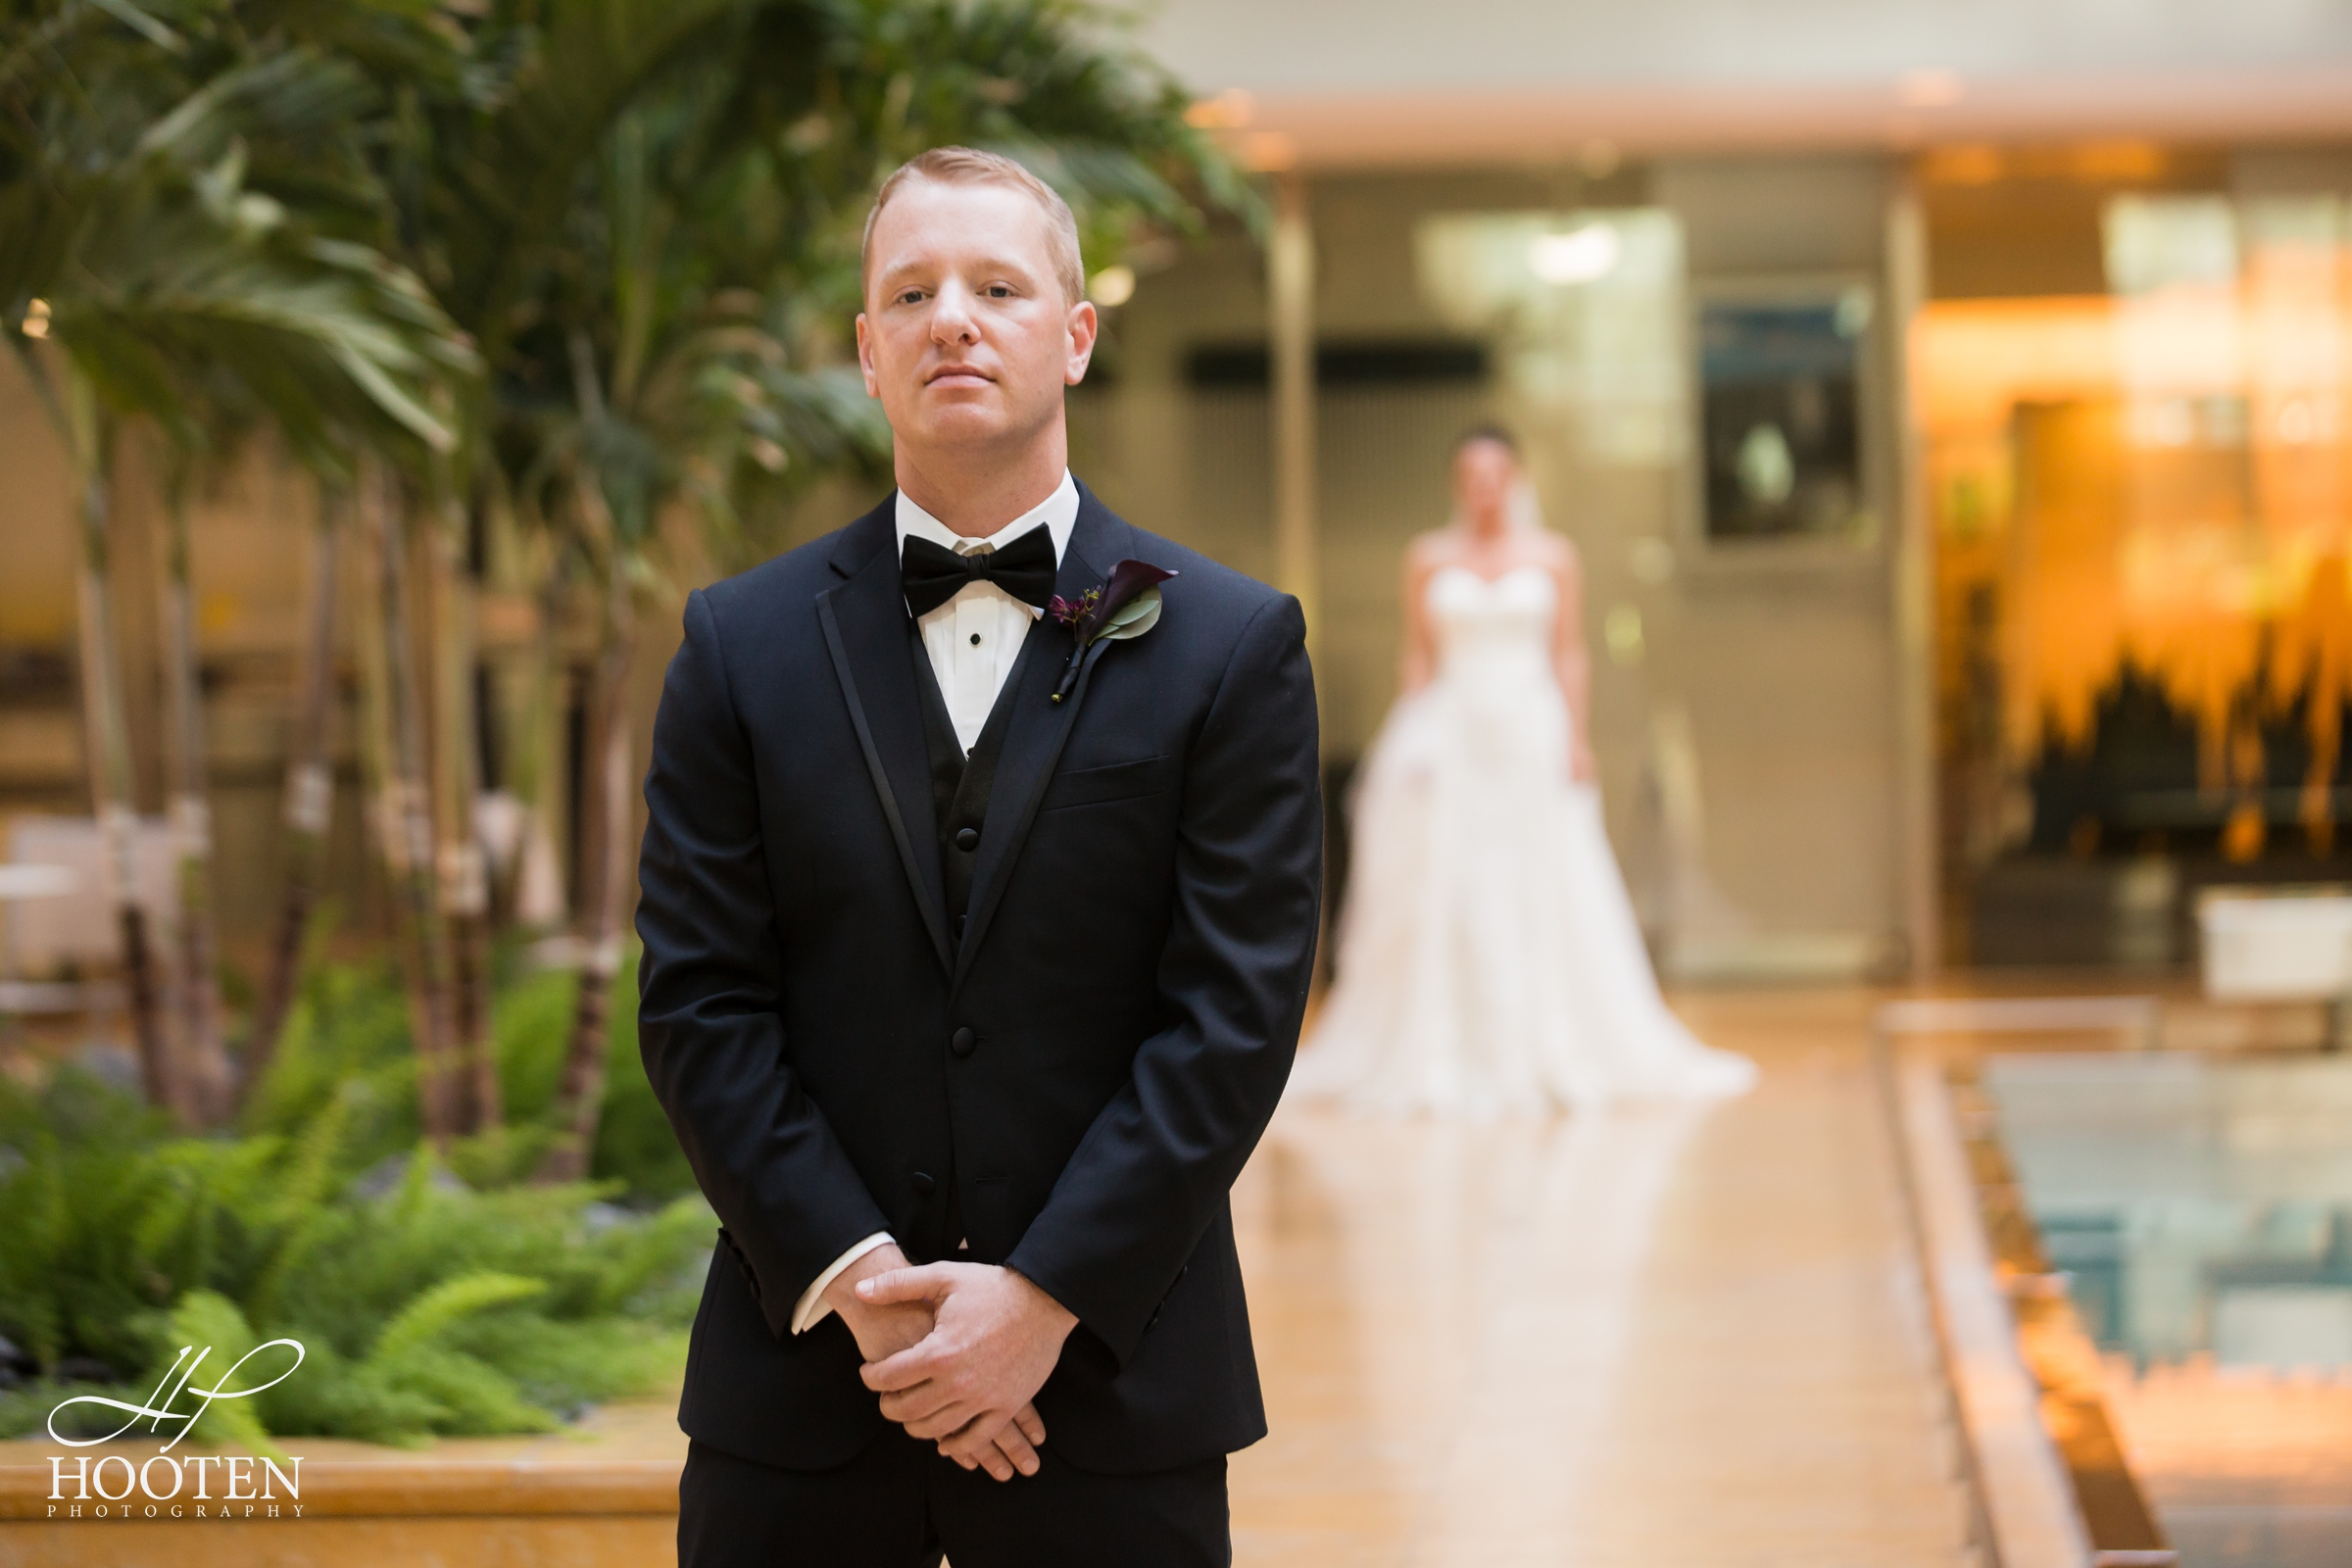 028.Conrad-Miami-Hotel-Wedding-Hooten-Photography.jpg